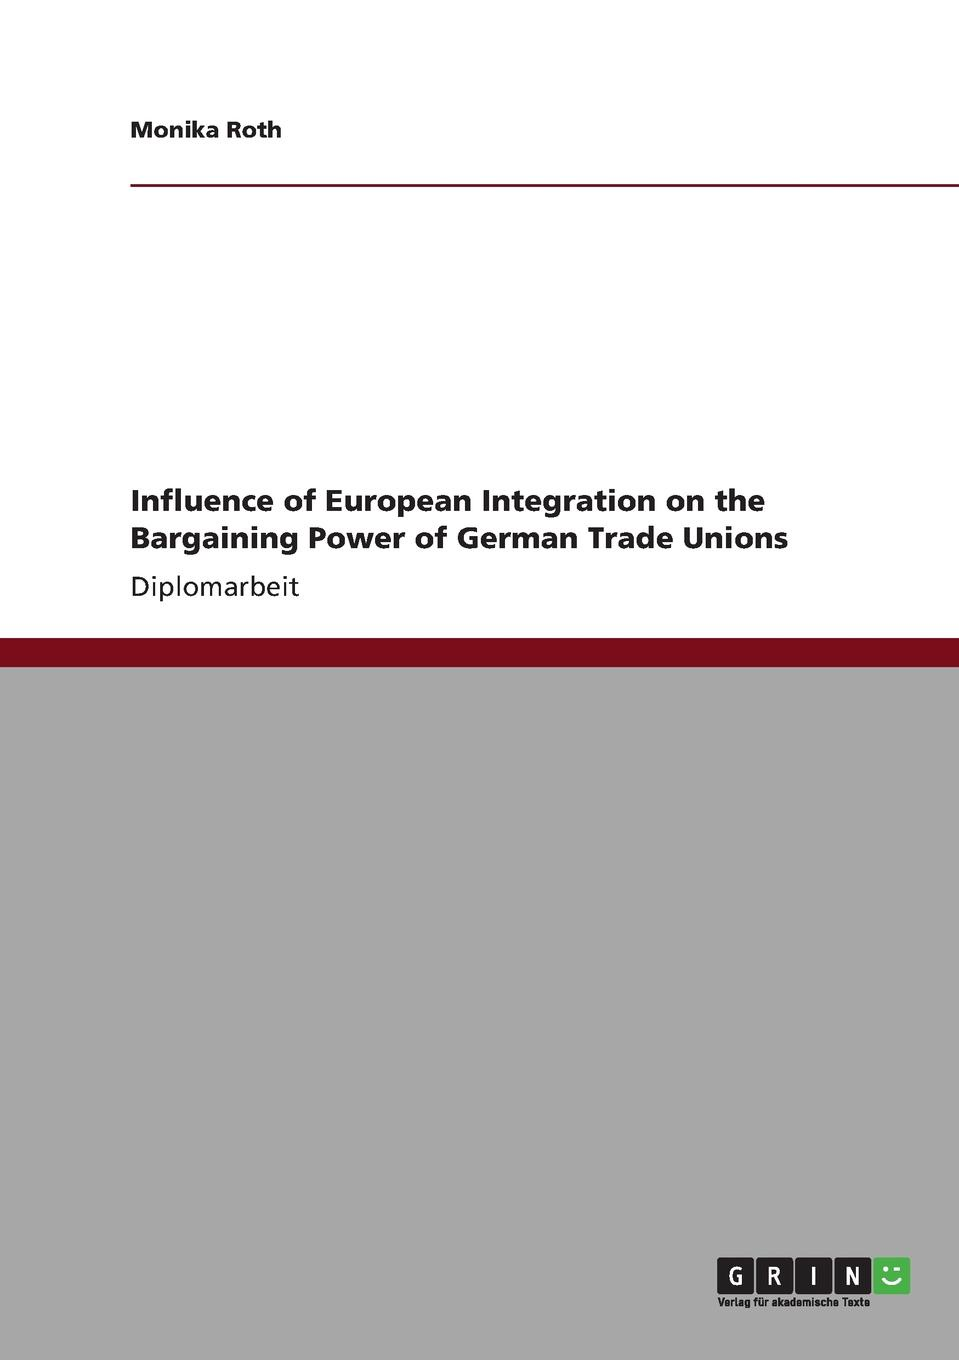 Monika Roth Influence of European Integration on the Bargaining Power of German Trade Unions electricity market in turkey and its integration policy into the eu